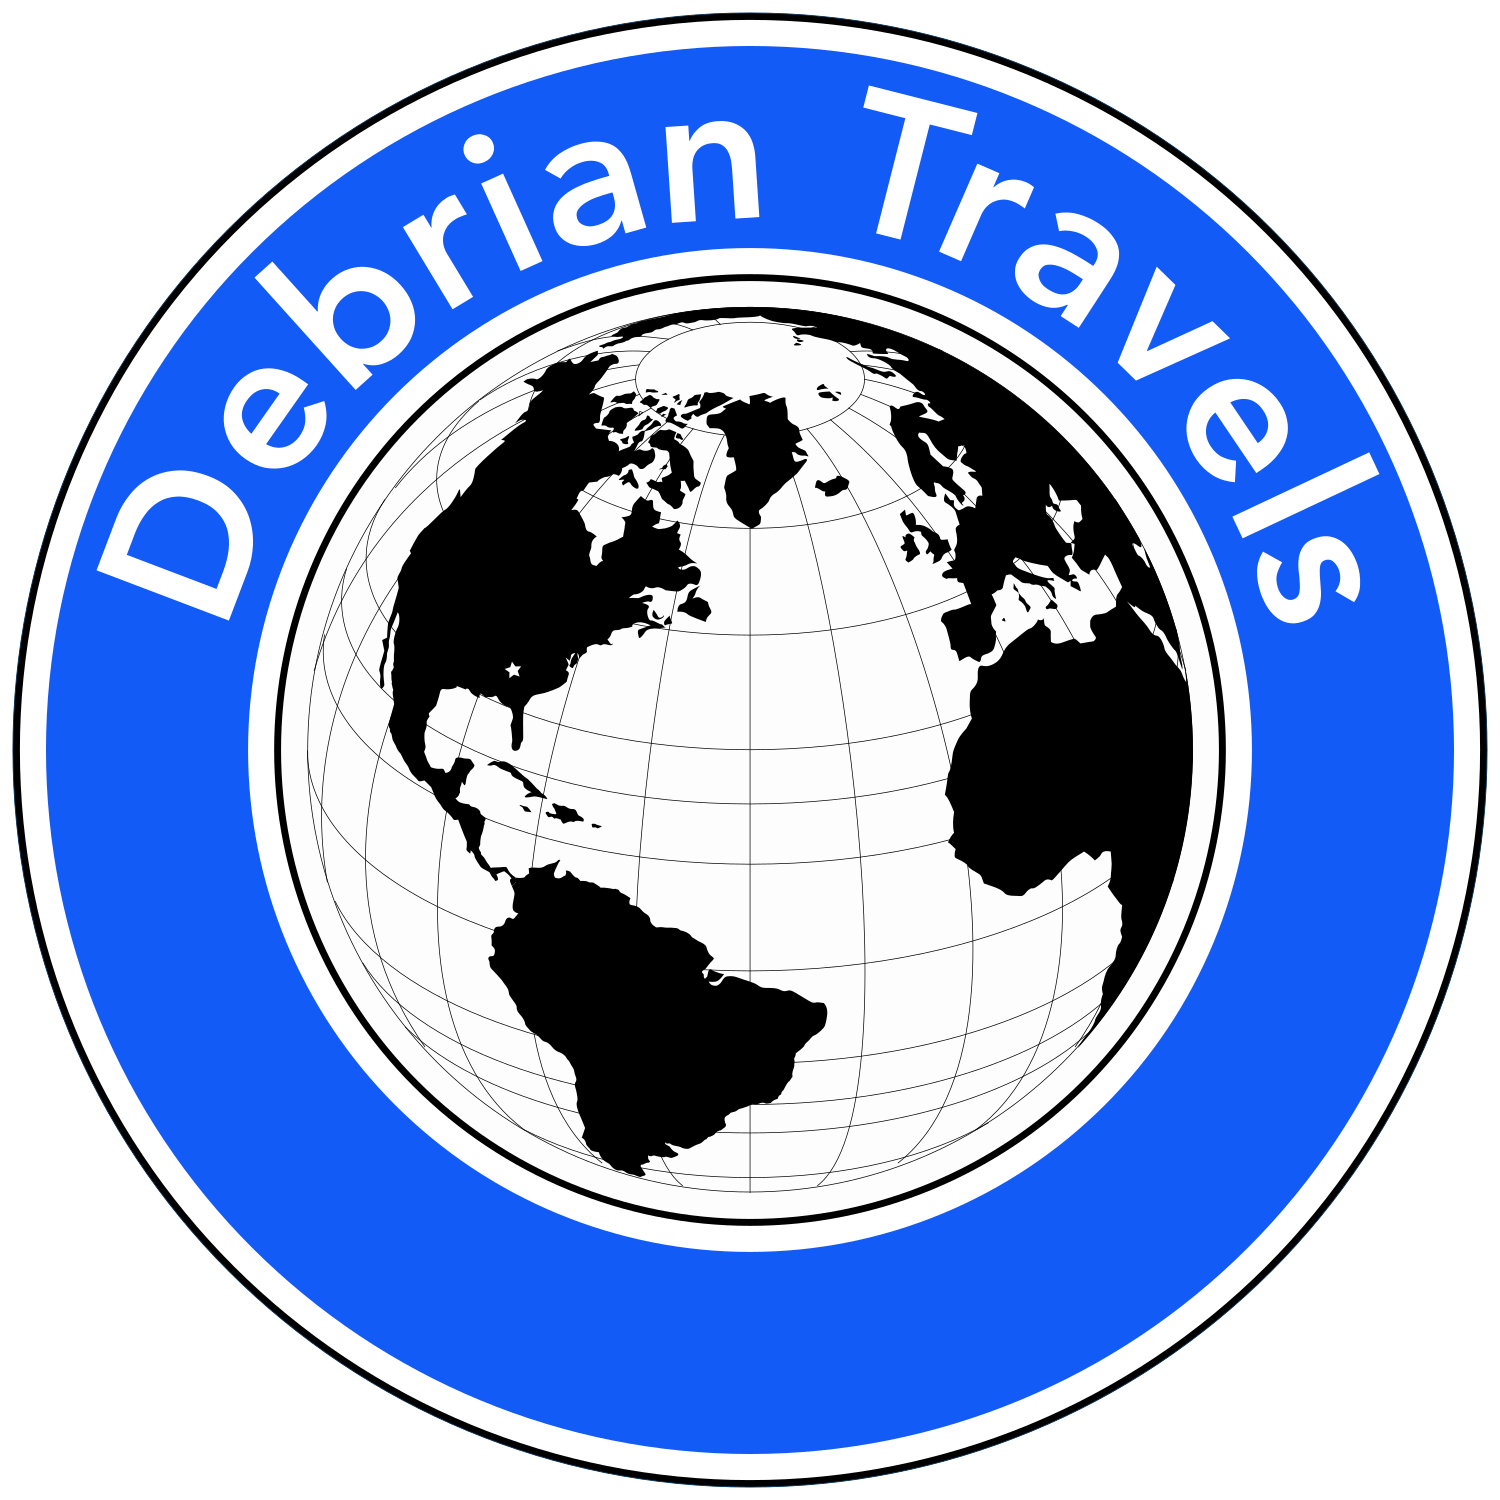 Debrian Travels